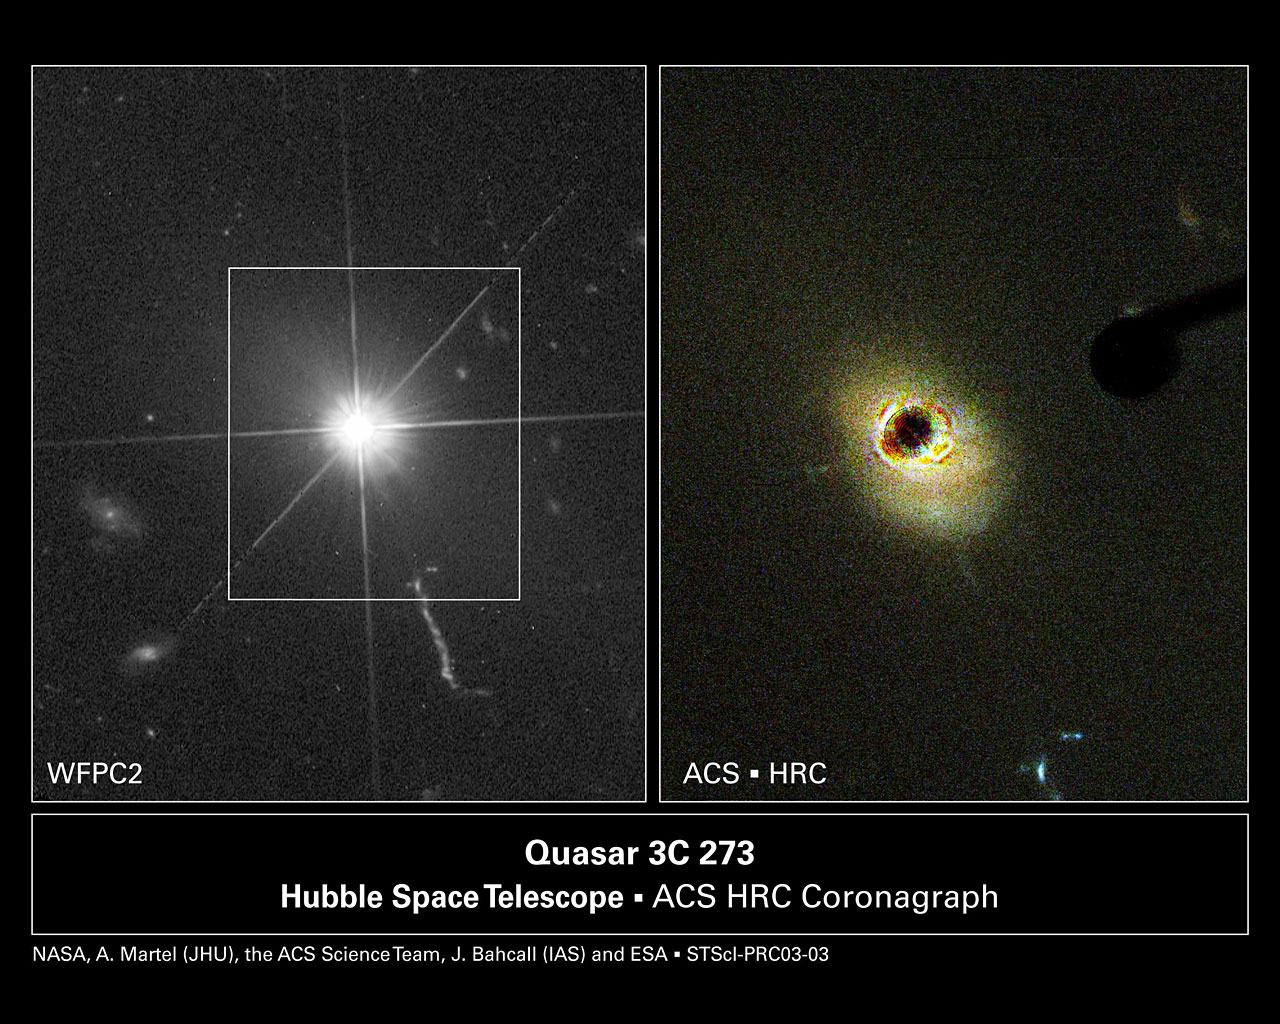 Hubble Probes the Heart of a Nearby Quasar   ESA/Hubble